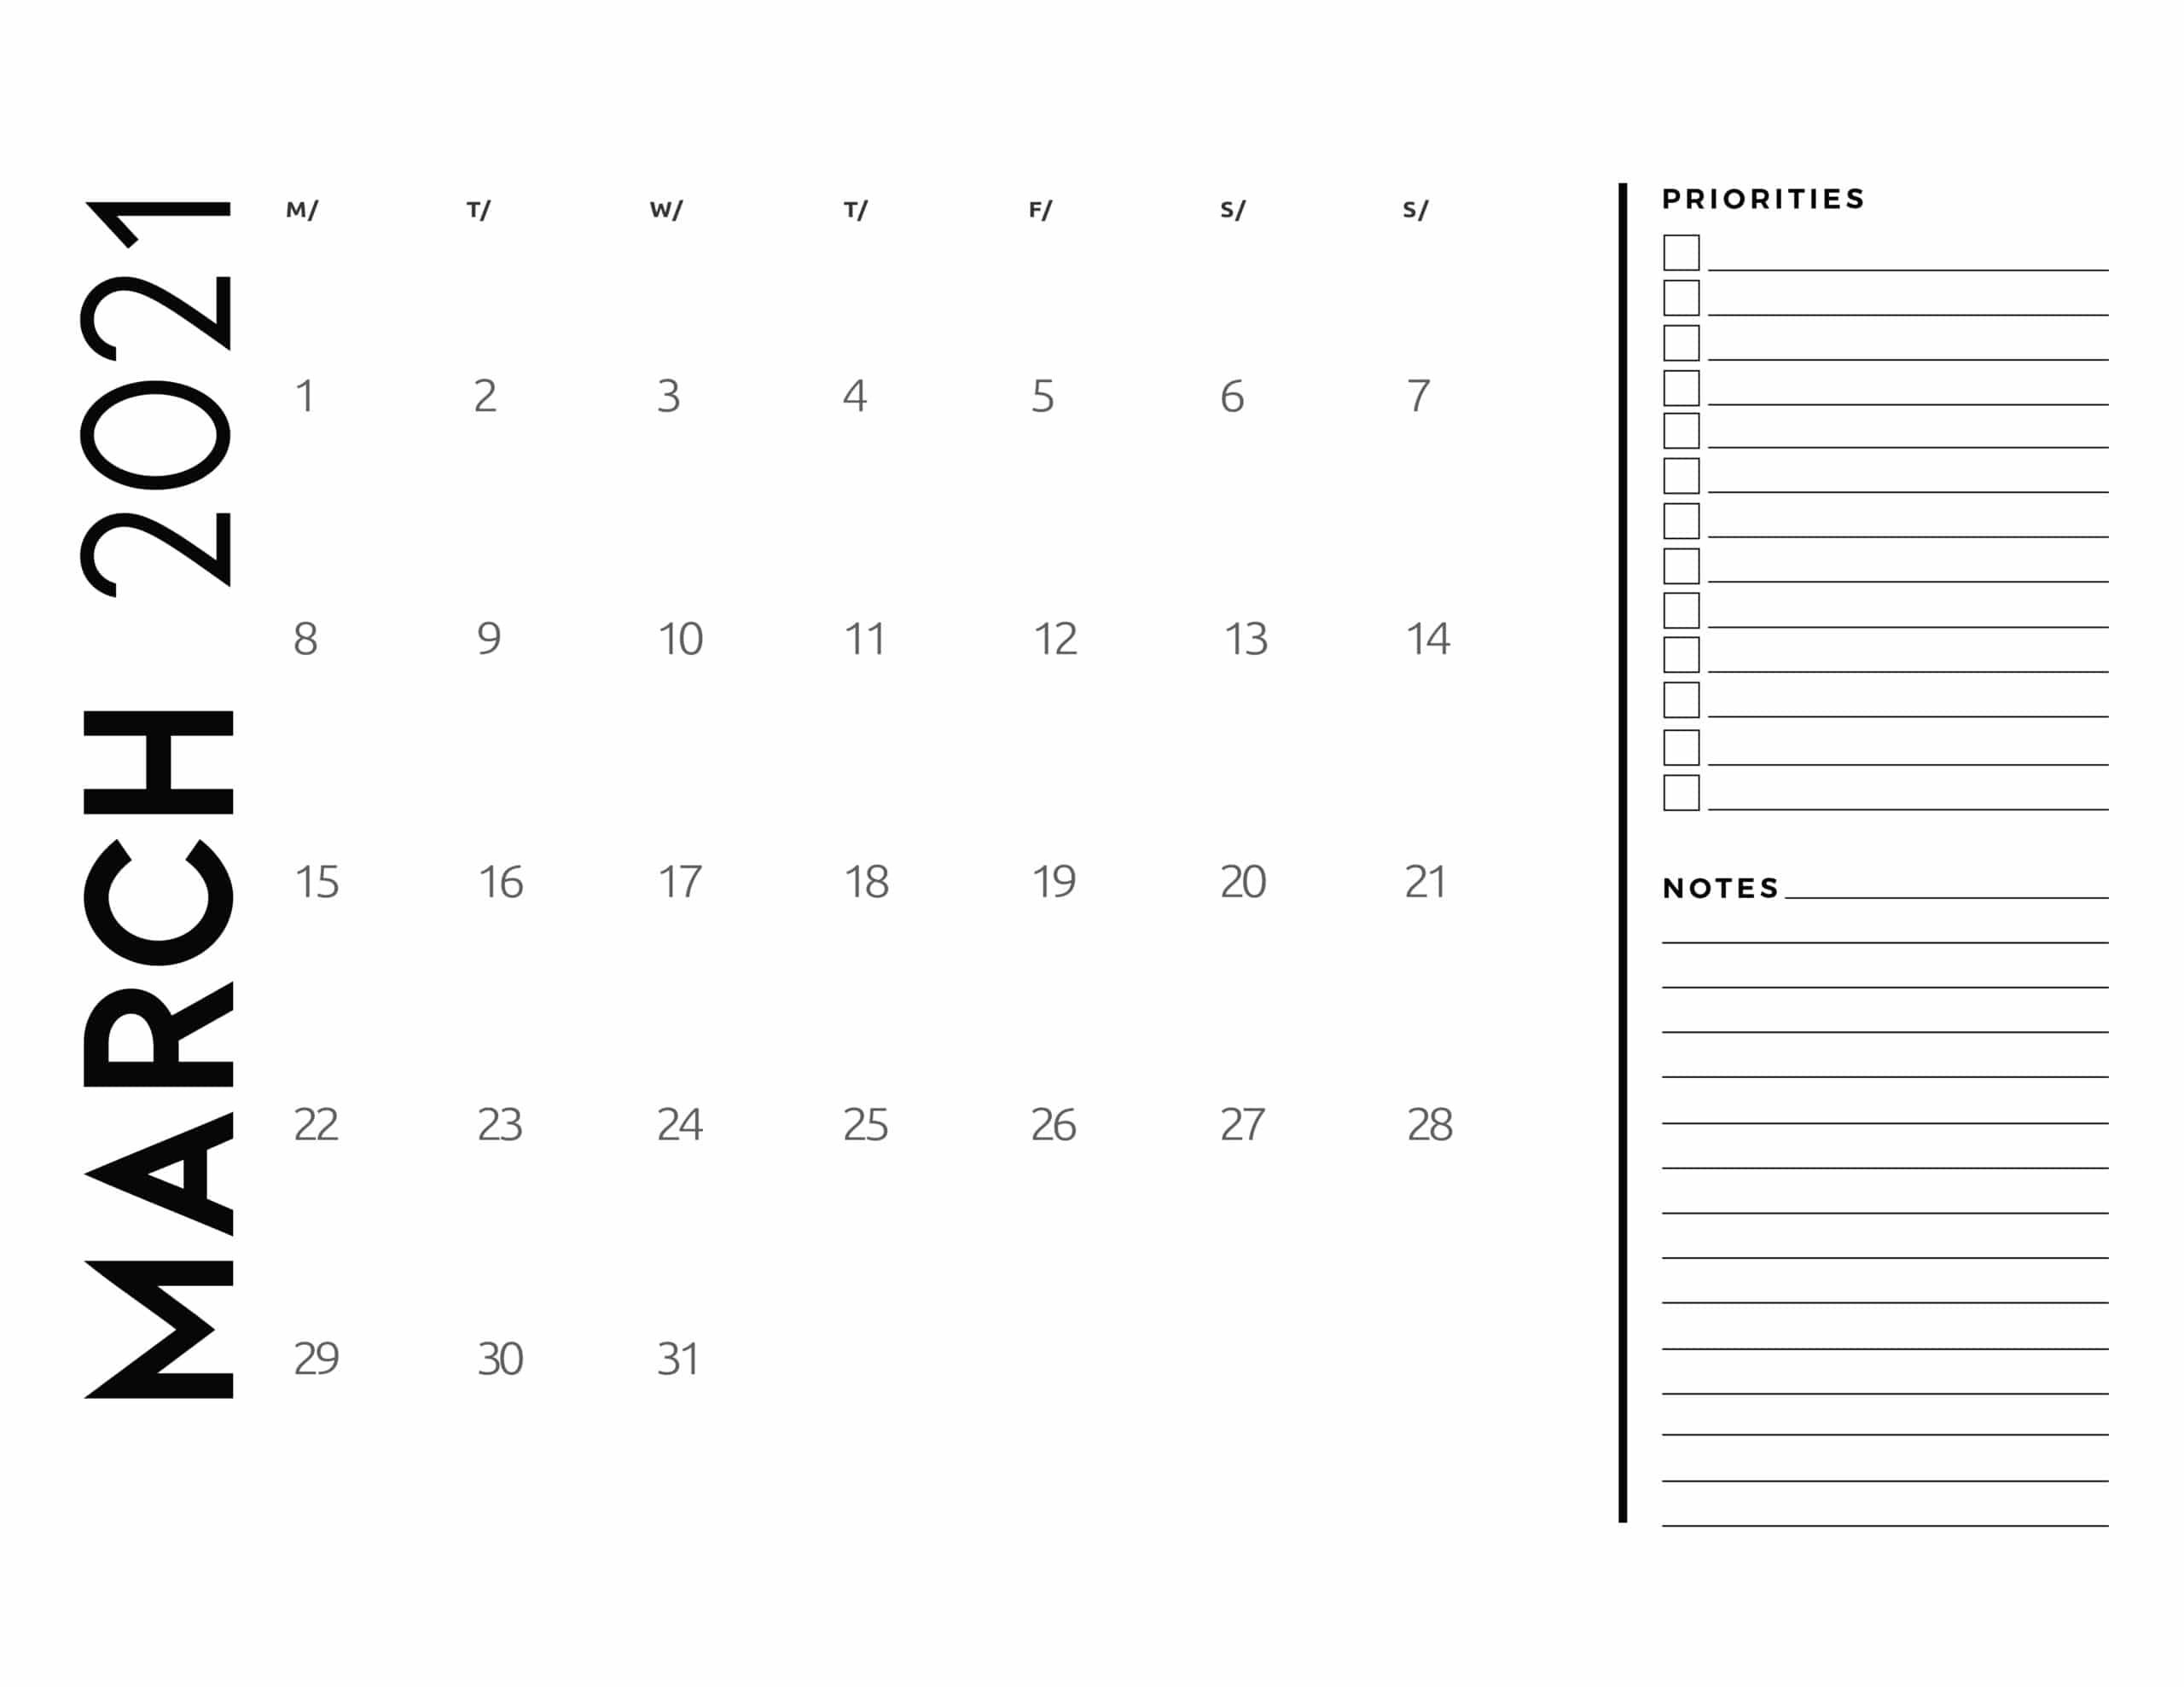 Free 2021 Calendar Priorities And Notes - World Of Printables Free Printable Calendar With Notes